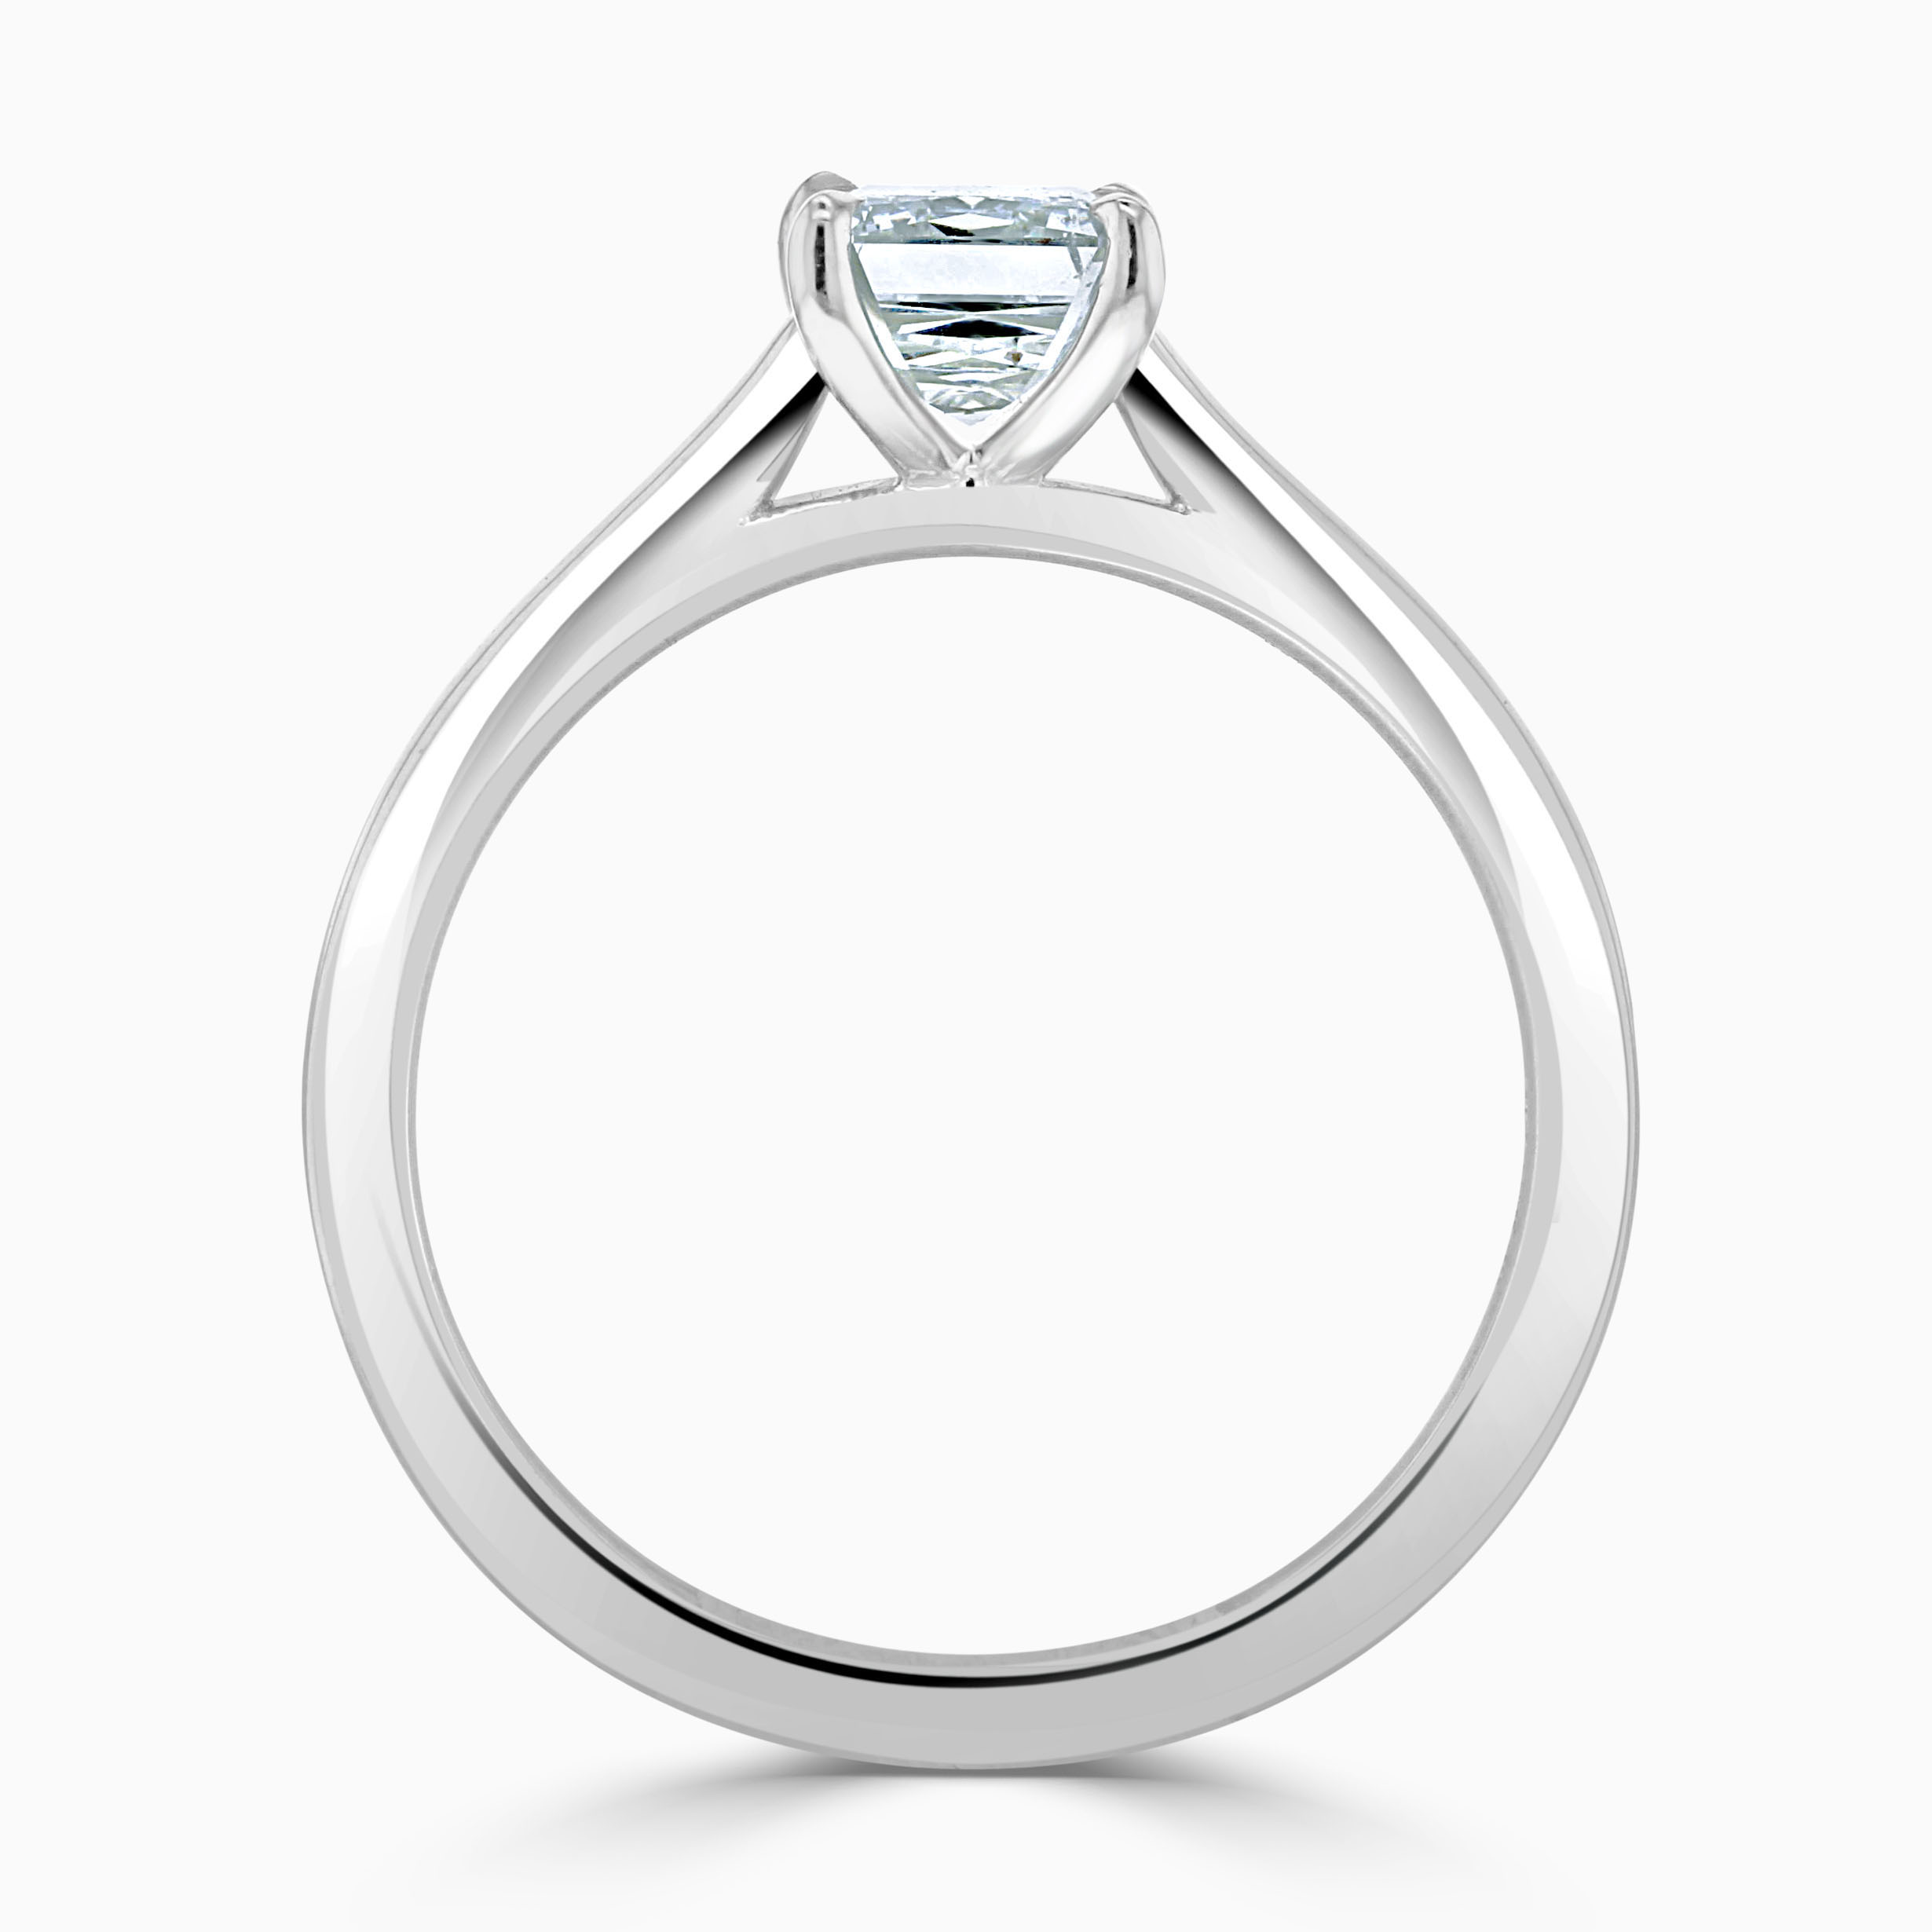 Platinum Crisscut Classic Wedfit Engagement Ring with Crisscut, 2.02ct, G Colour, VVS1 Clarity - GIA